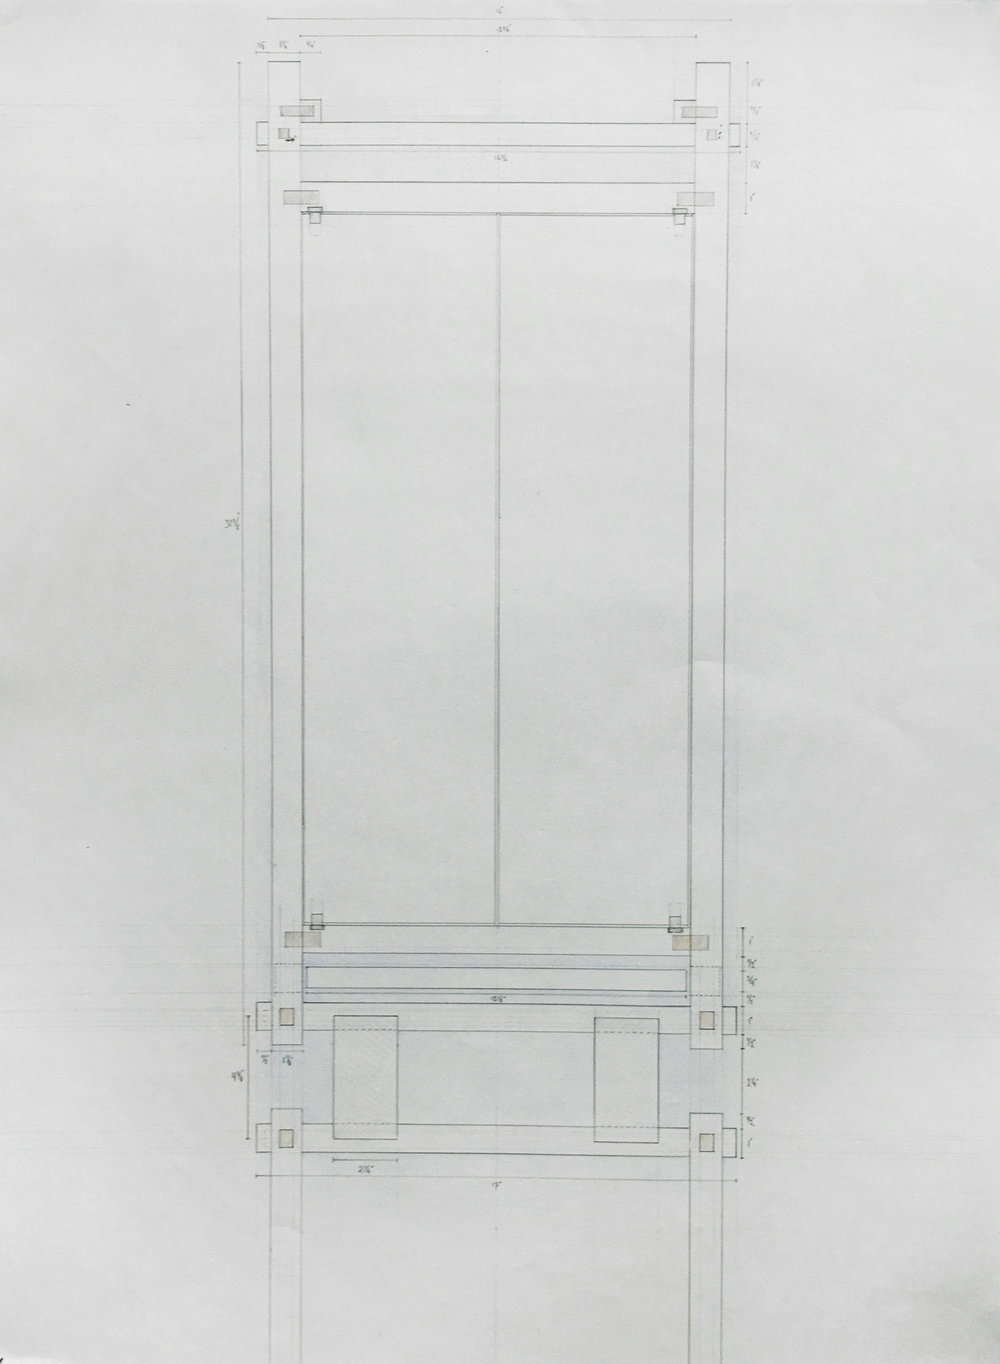 drawing_front_liquor_cabinet.jpg